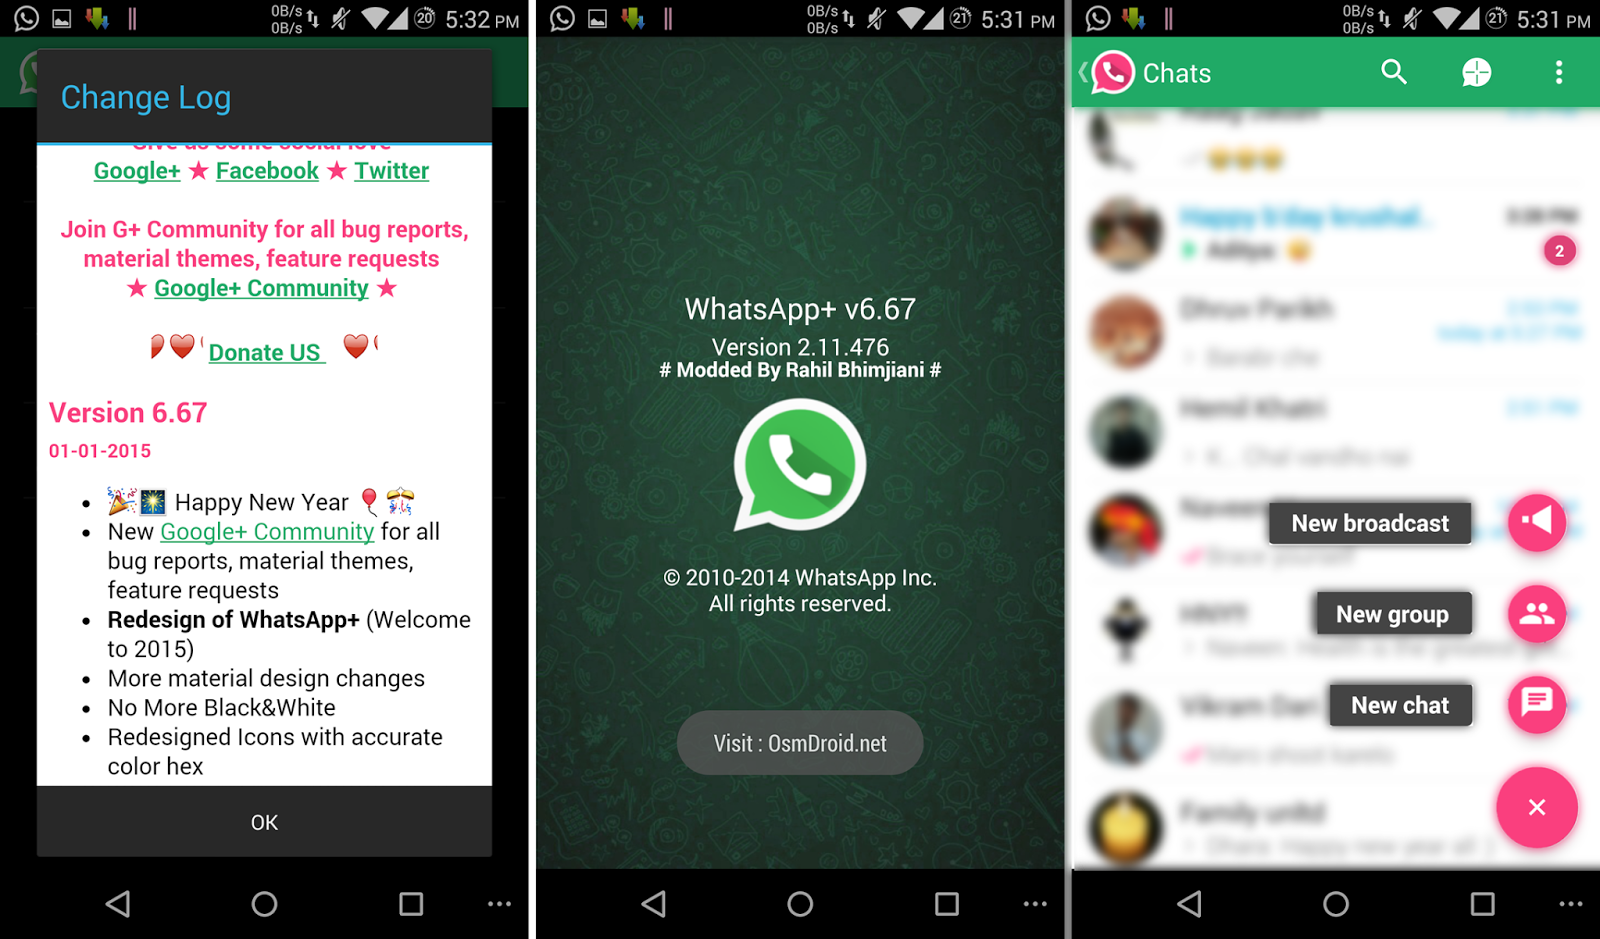 WhatsApp+ Plus v6.67 Material Modded Cracked Hide Last Seen